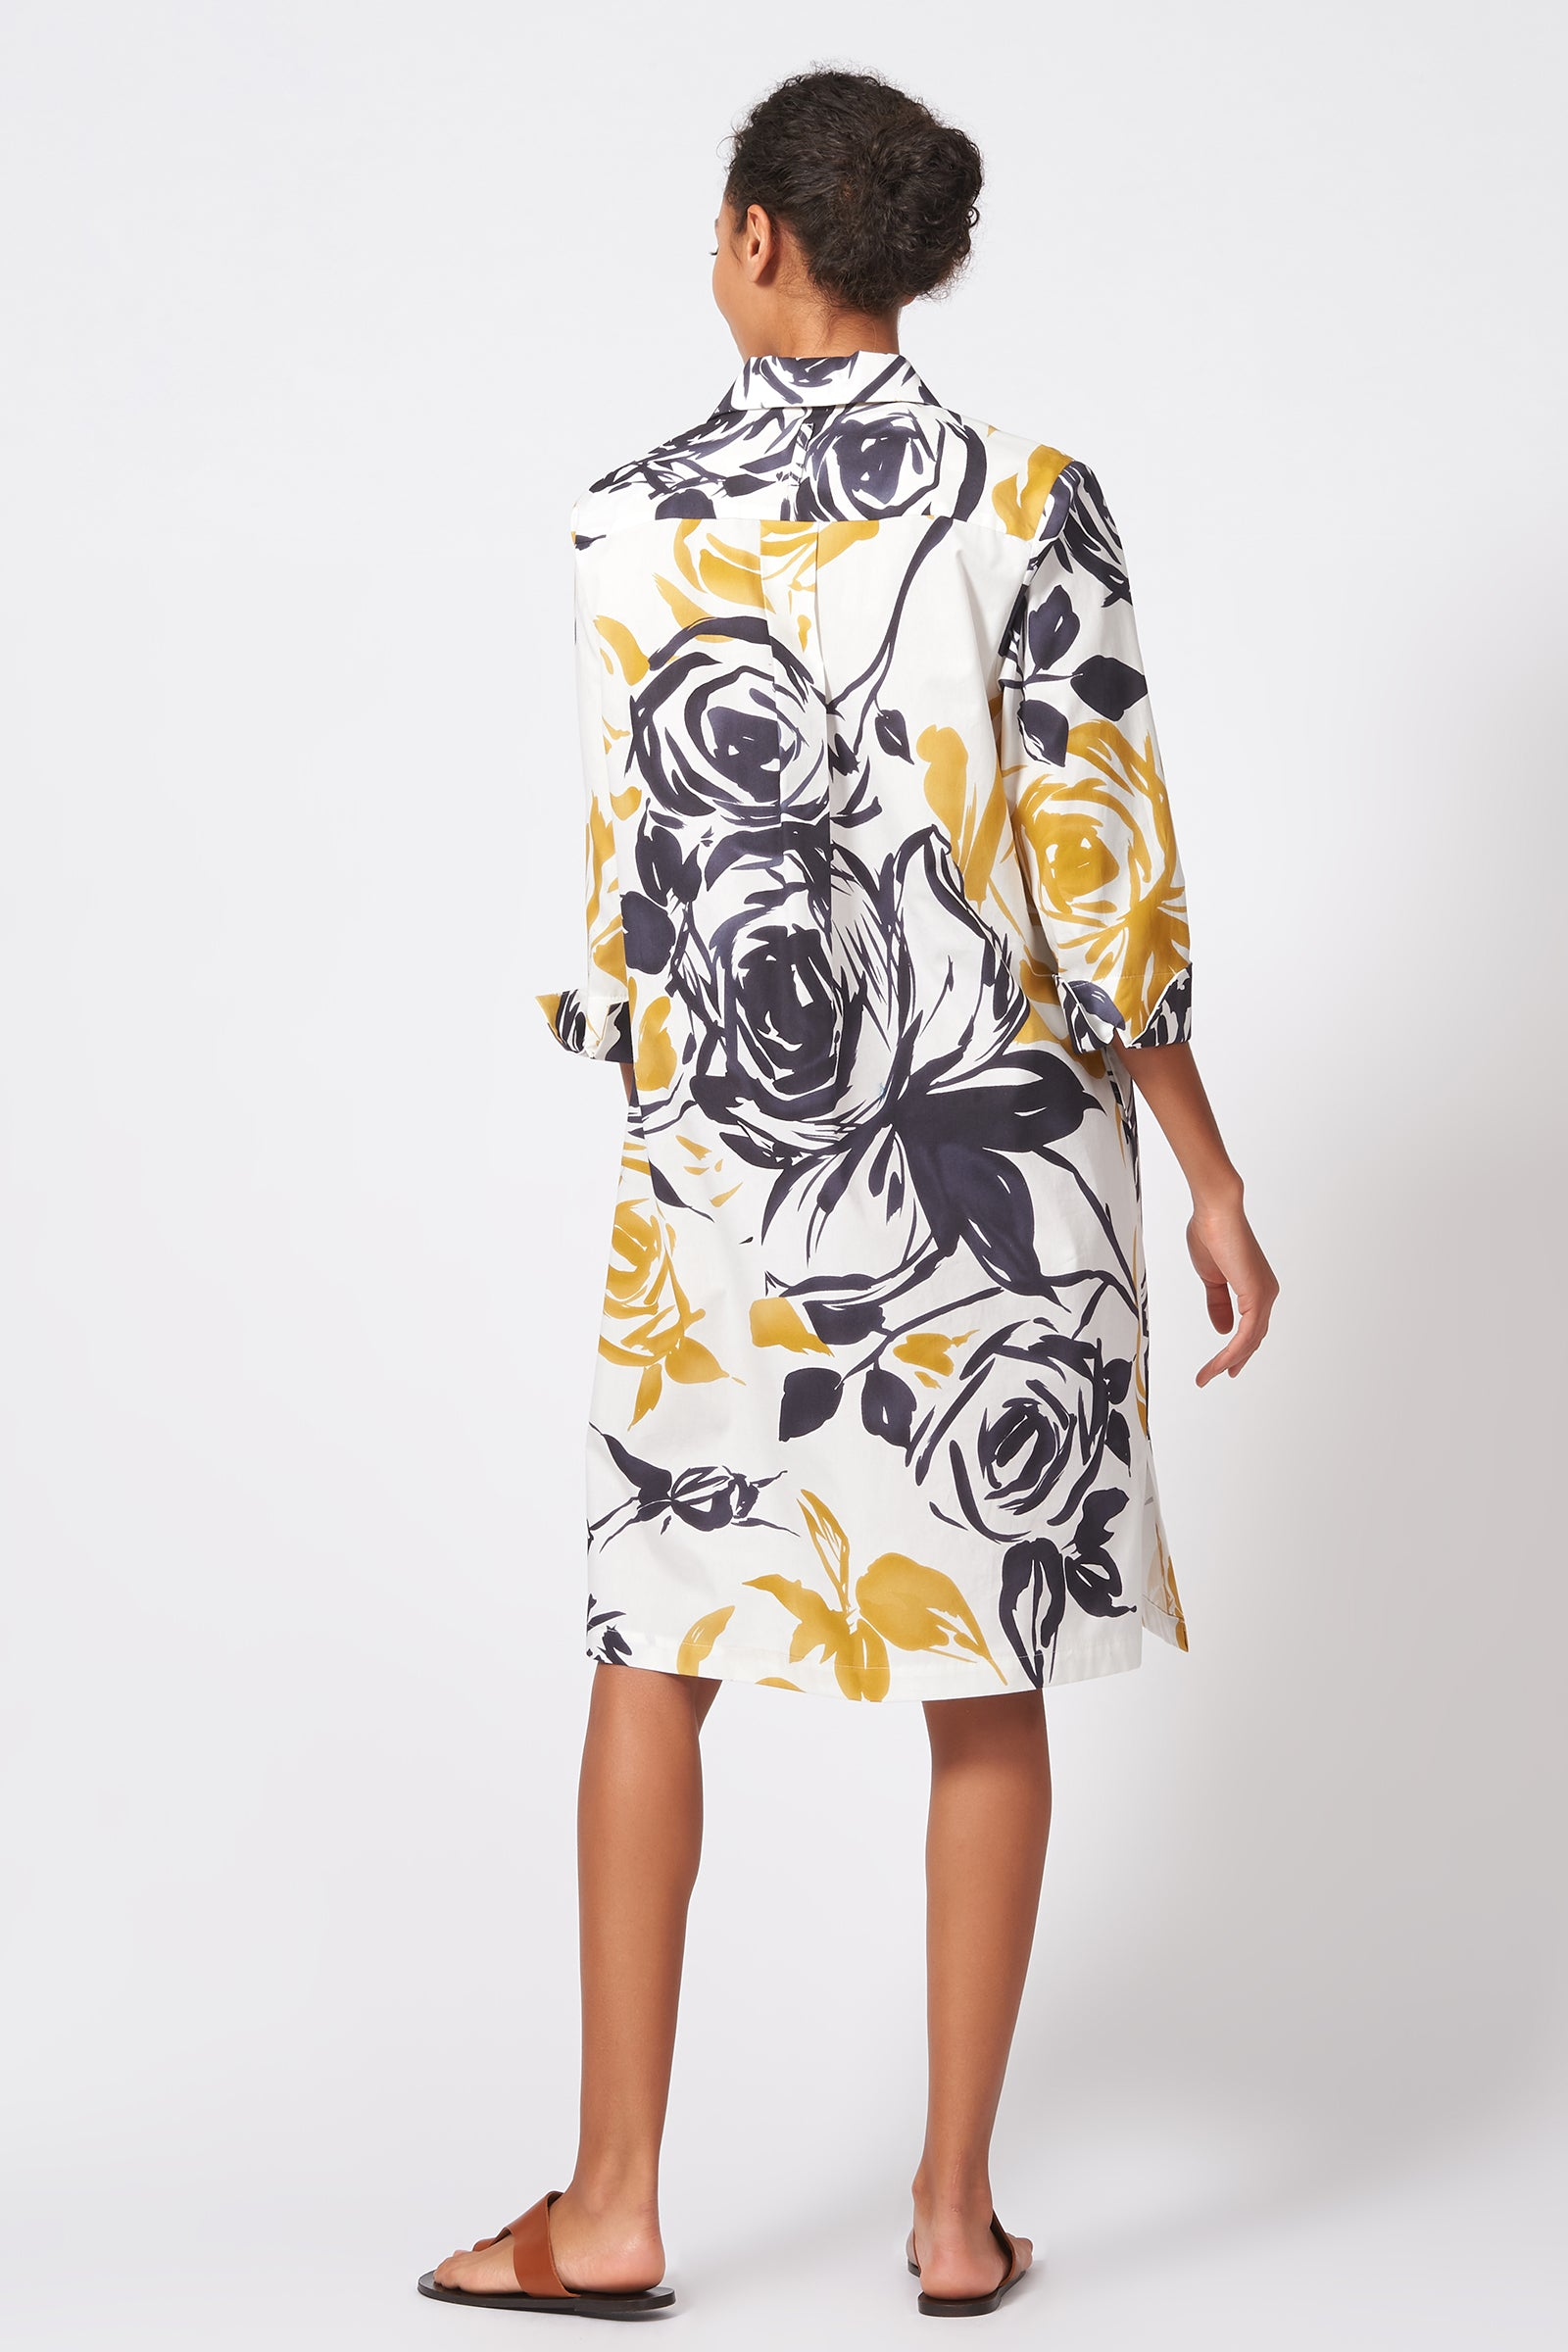 Kal Rieman Collared V Neck Dress in Floral on Model Side View